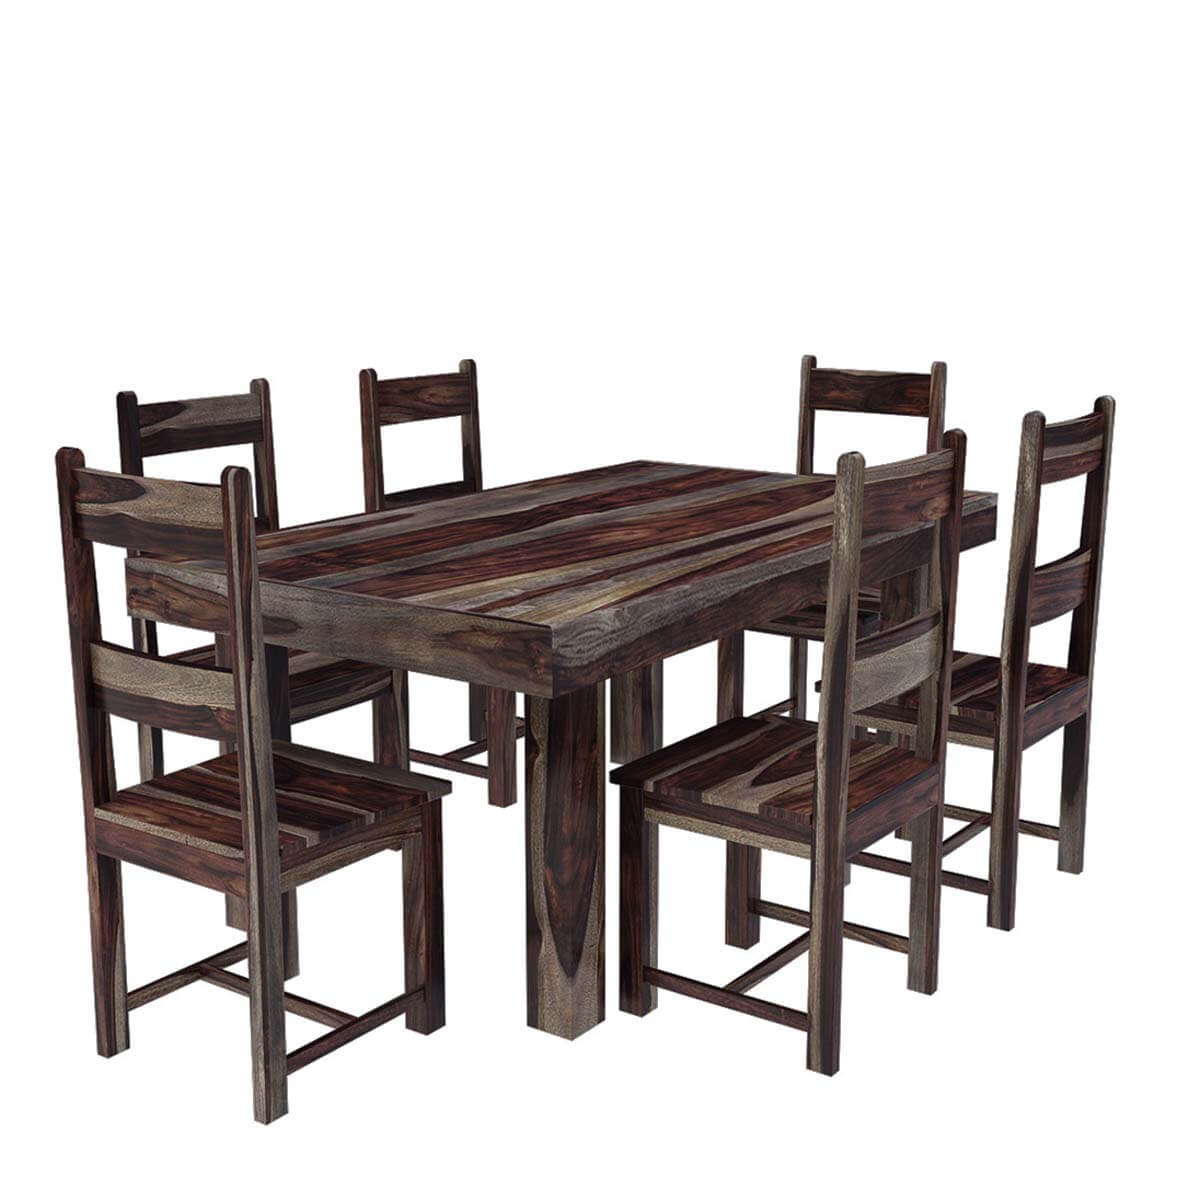 Rustic Dining Room Table solid wood casual rustic dining room table and chair set. solid